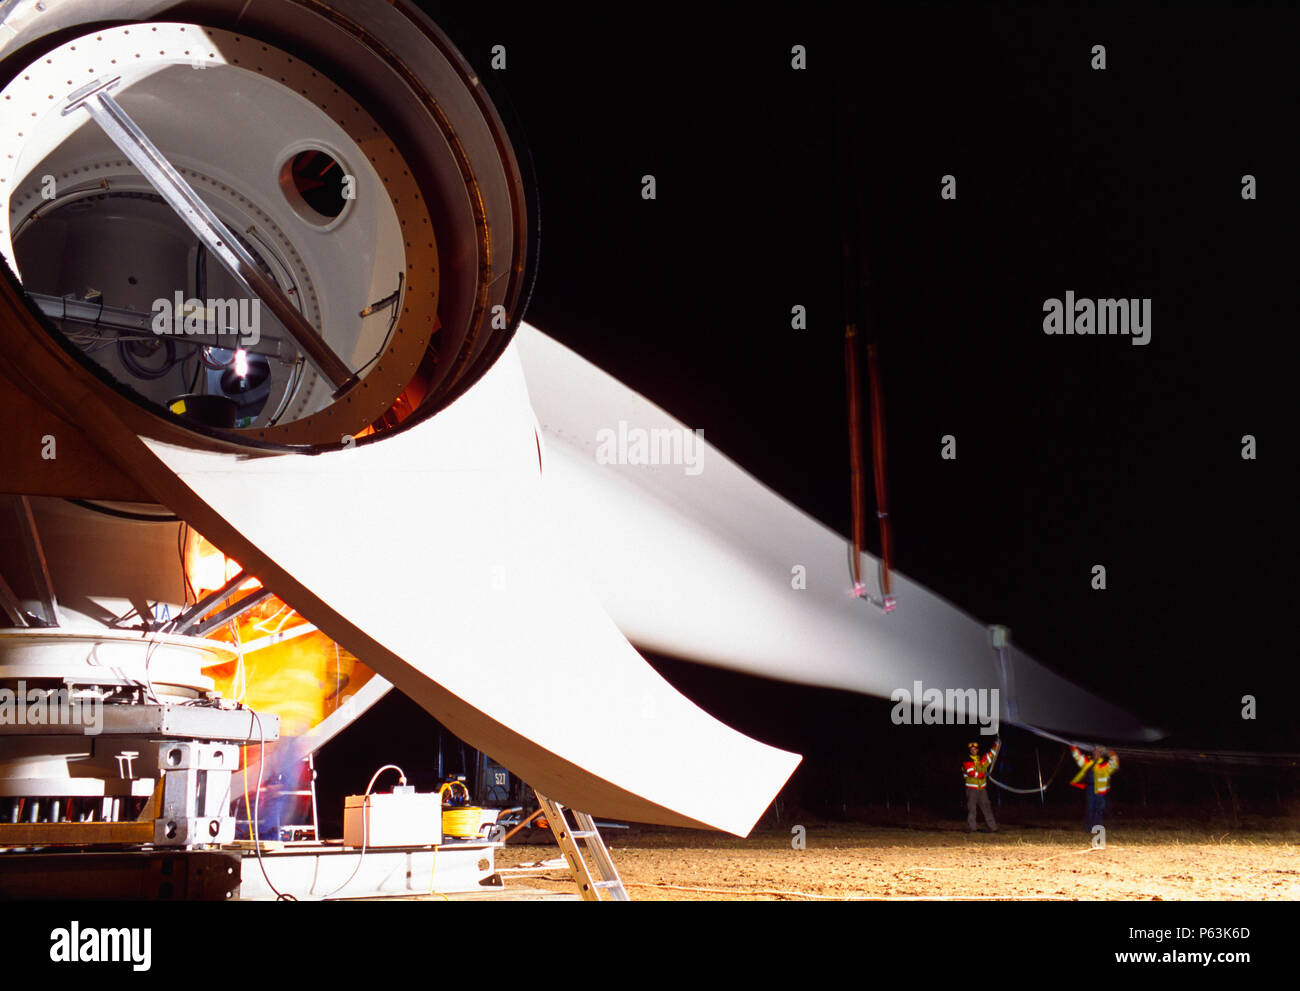 Long exposure image of workers assembling the hub and blades of a giant Enercon wind turbine at night. Stock Photo